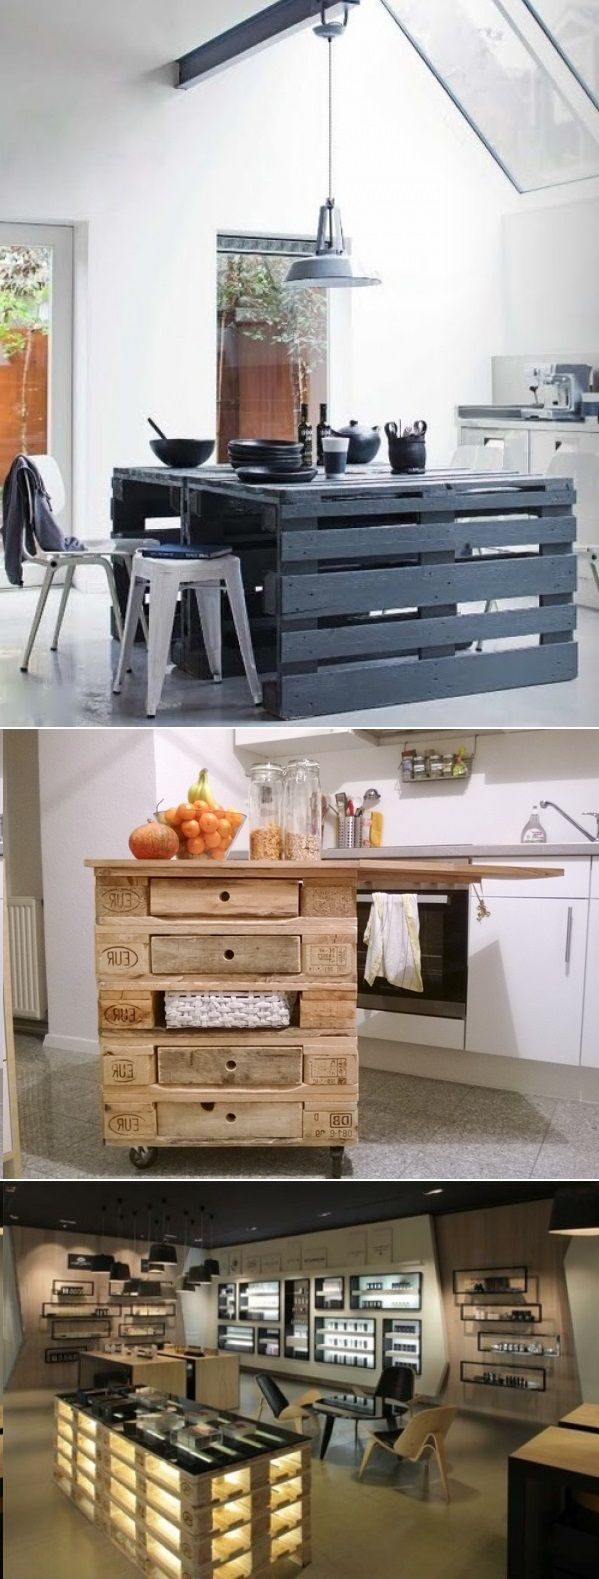 #Kücheninsel aus #Paletten #DIY #Kücke #Kitchen Island Of #Pallets